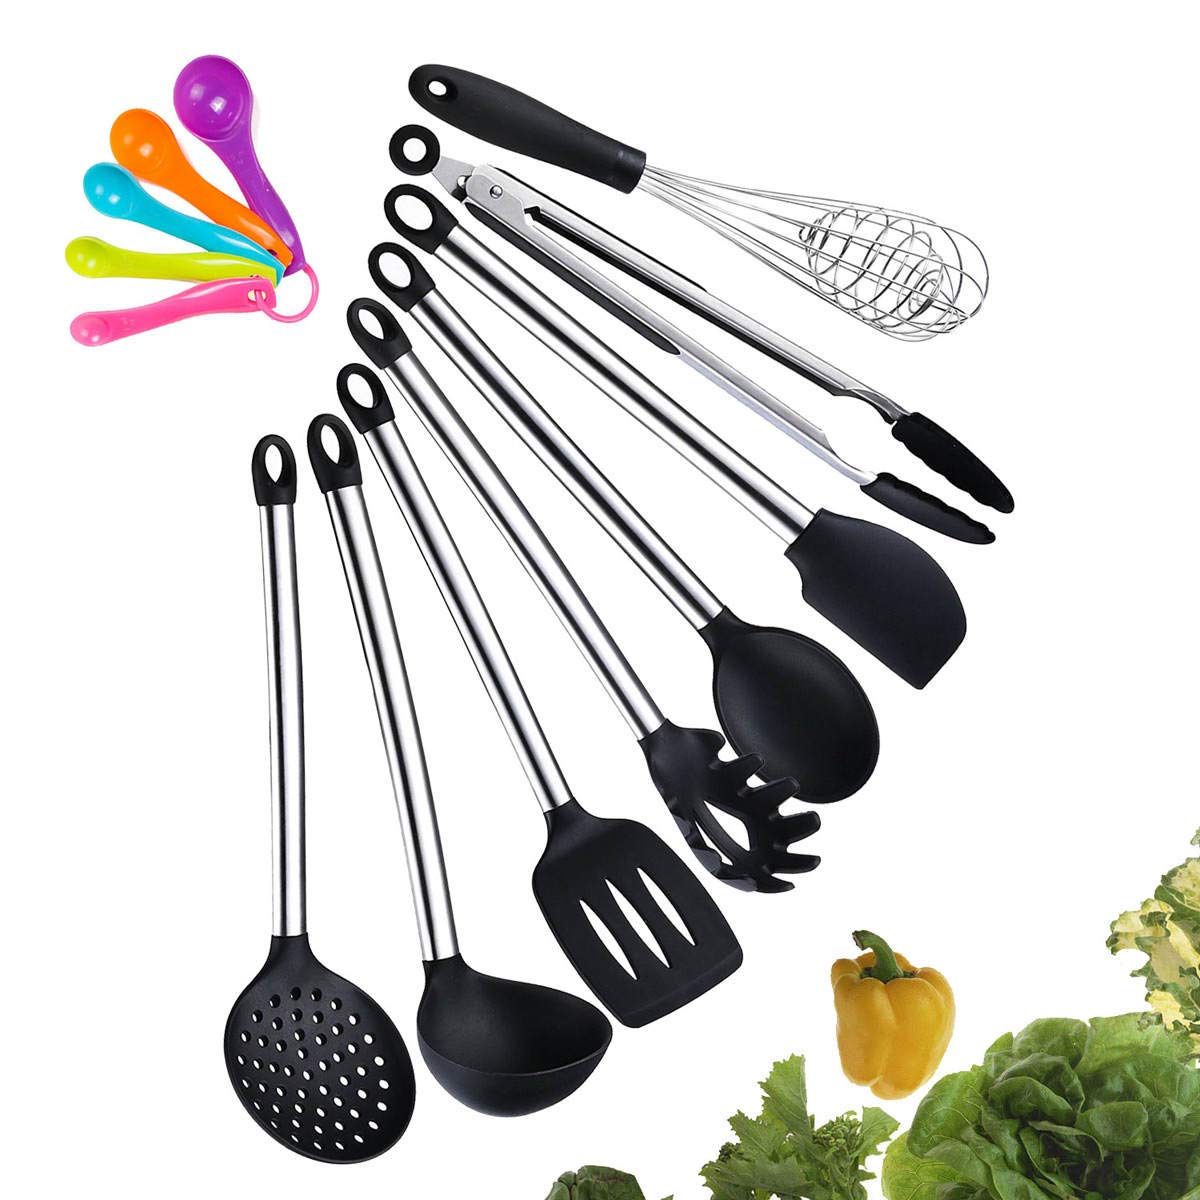 Details about Kitchen Utensil Set, 8 Piece Best Silicone Kitchen Utensils,  Non-Stick Cooking